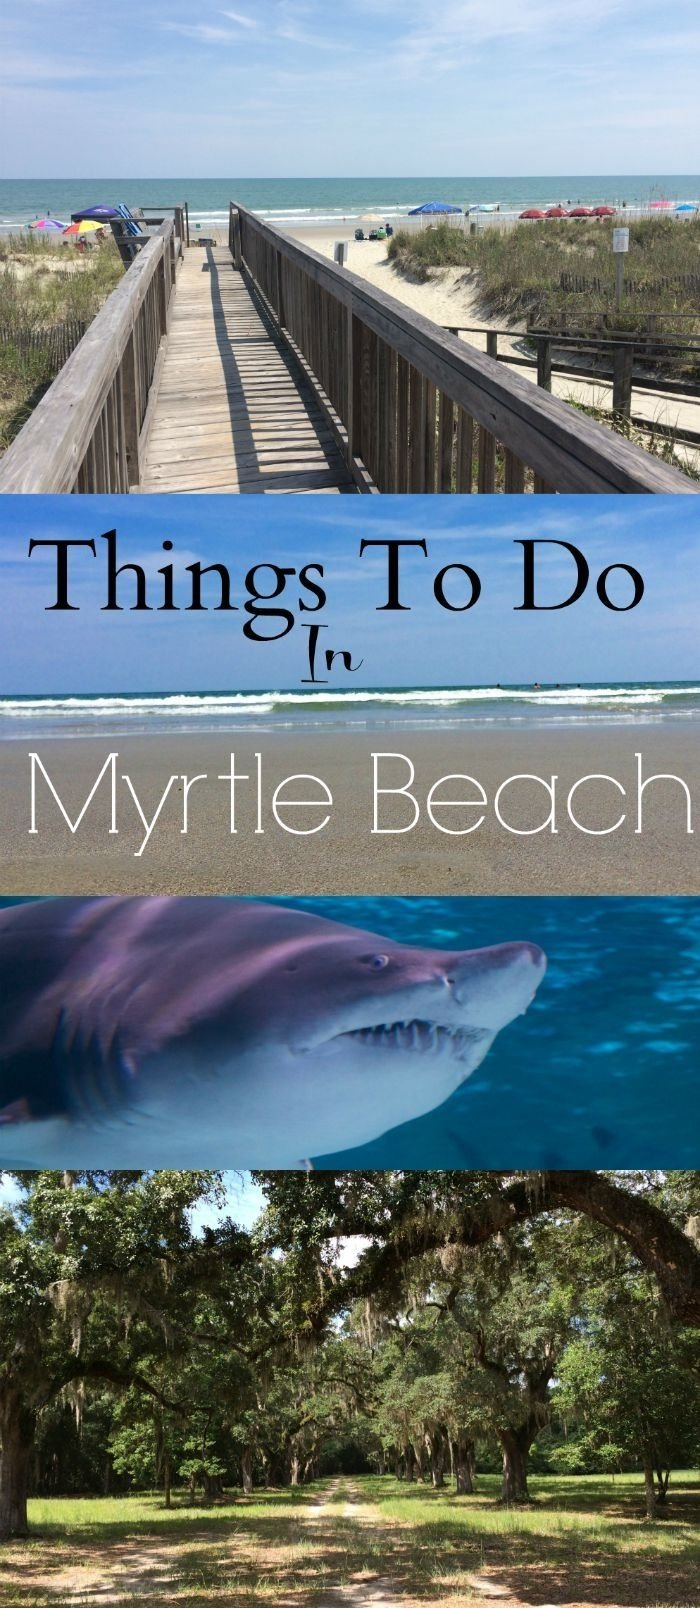 things to do in myrtle beach south carolina | myrtle beach south